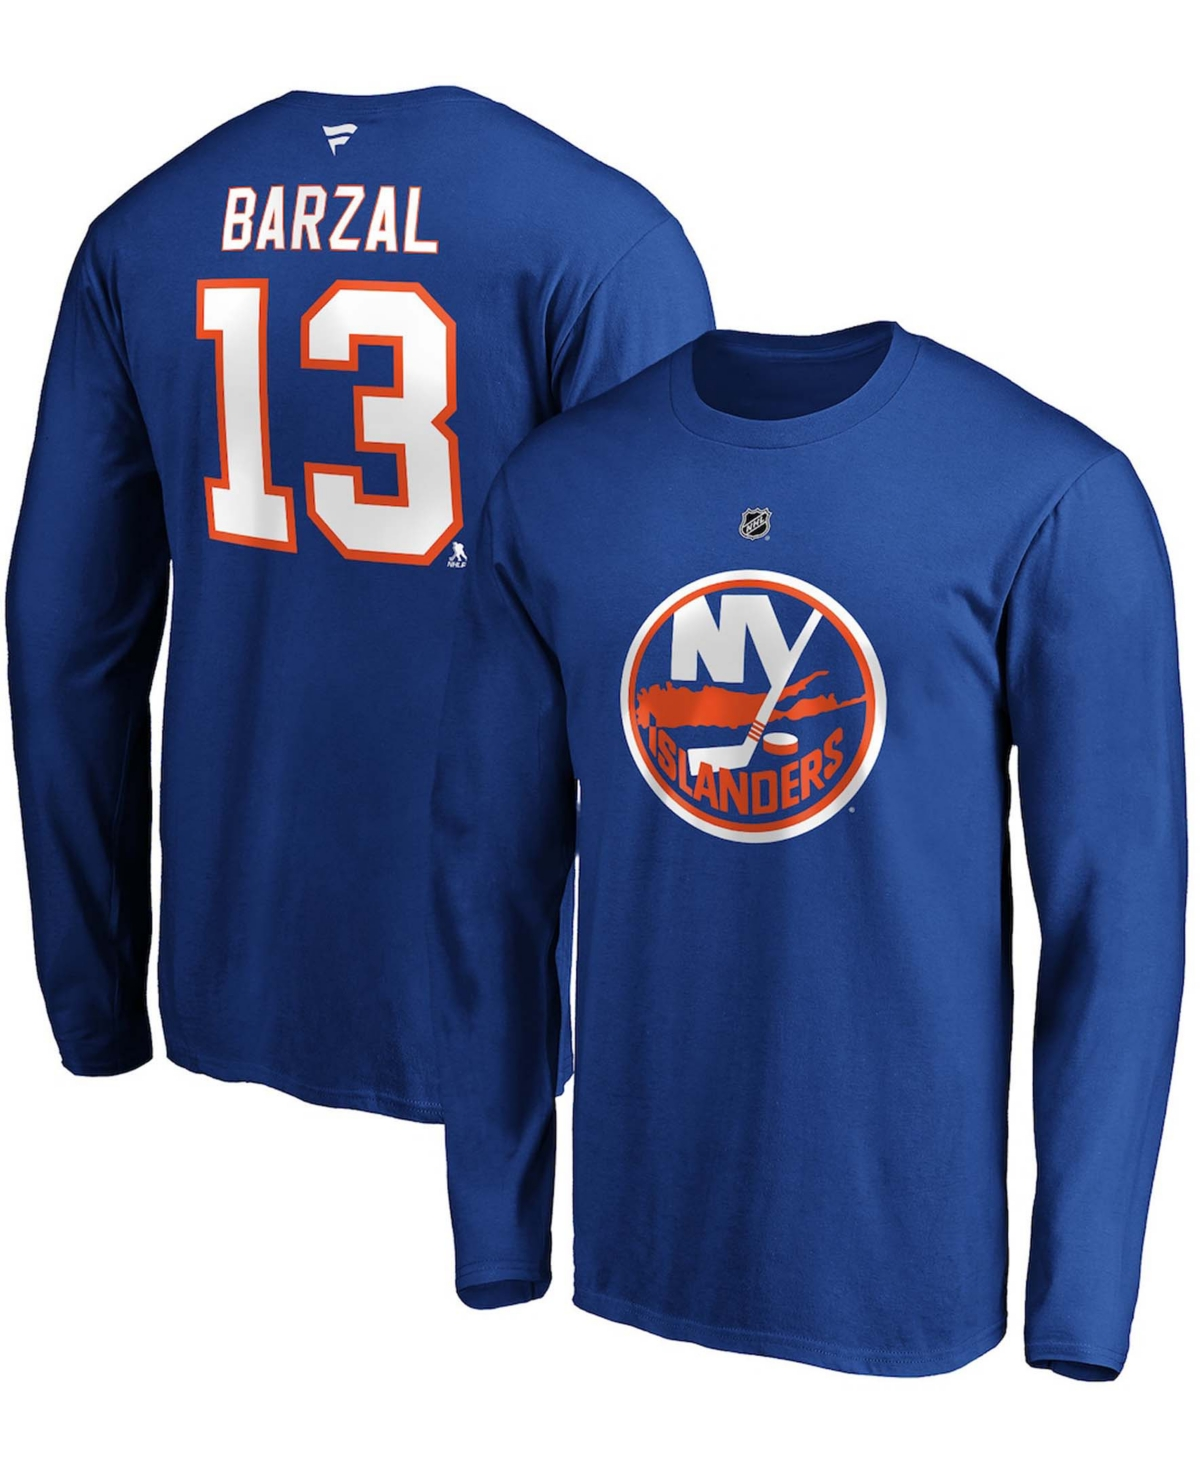 Men's Mathew Barzal Royal New York Islanders Authentic Stack Name and Number Long Sleeve T-shirt